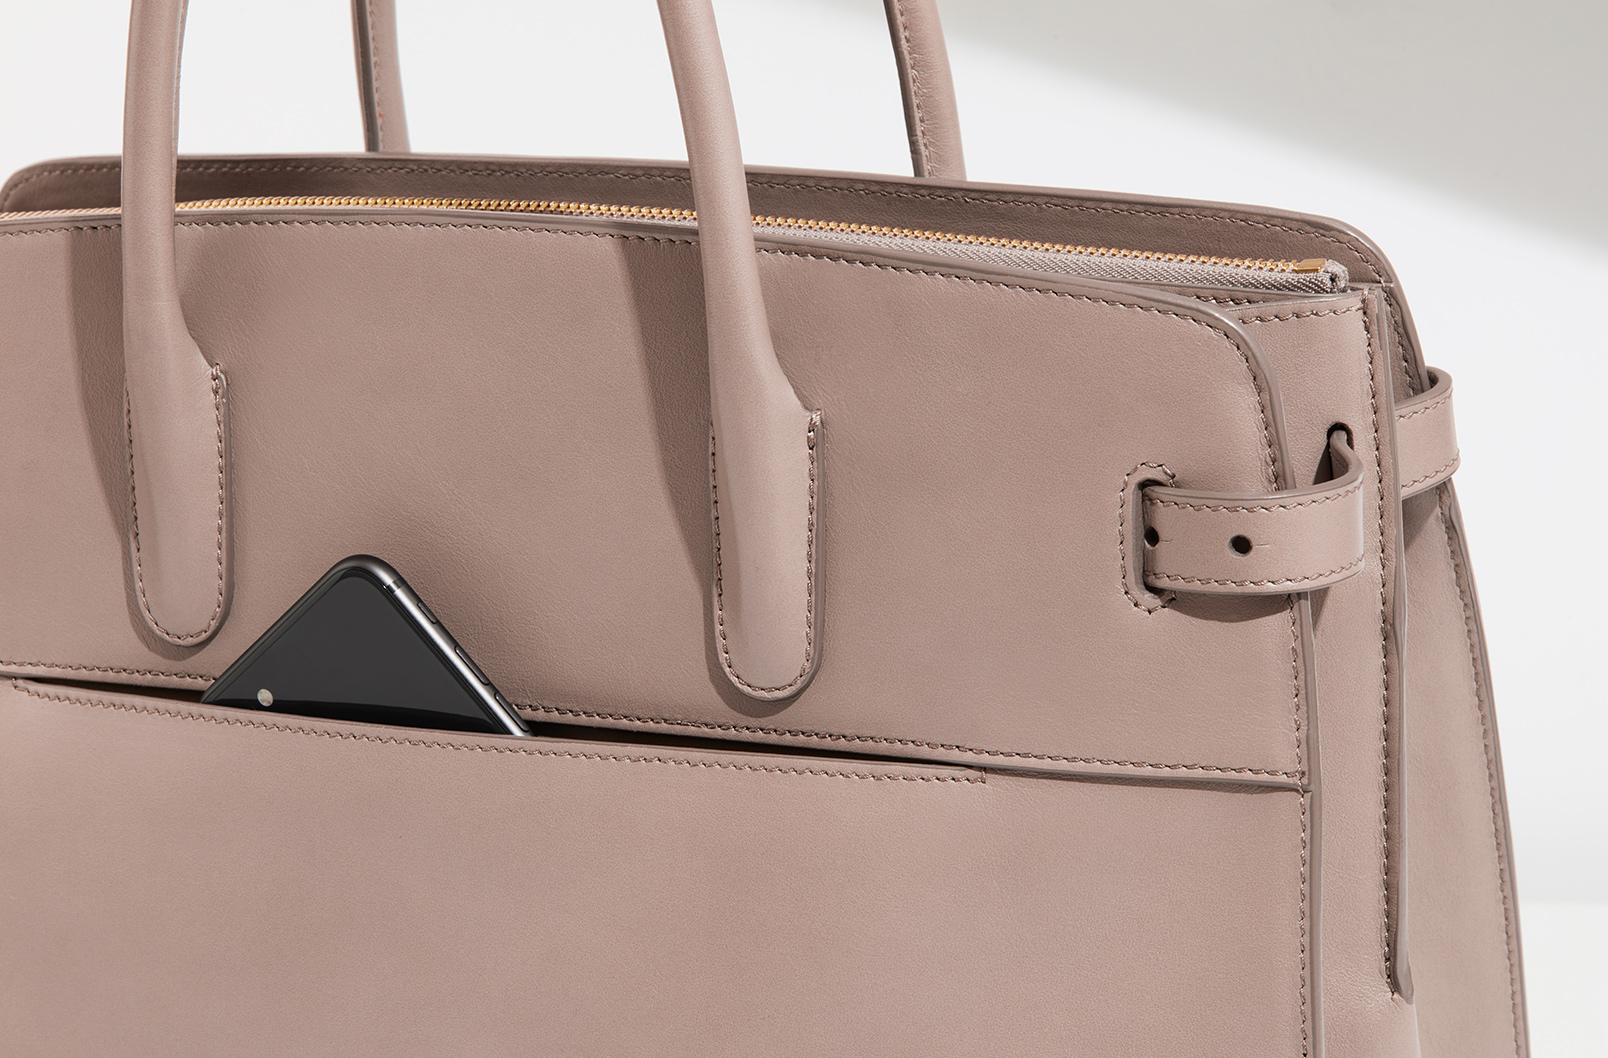 Slip pockets on exterior of Work Satchel allows for easy access to a phone